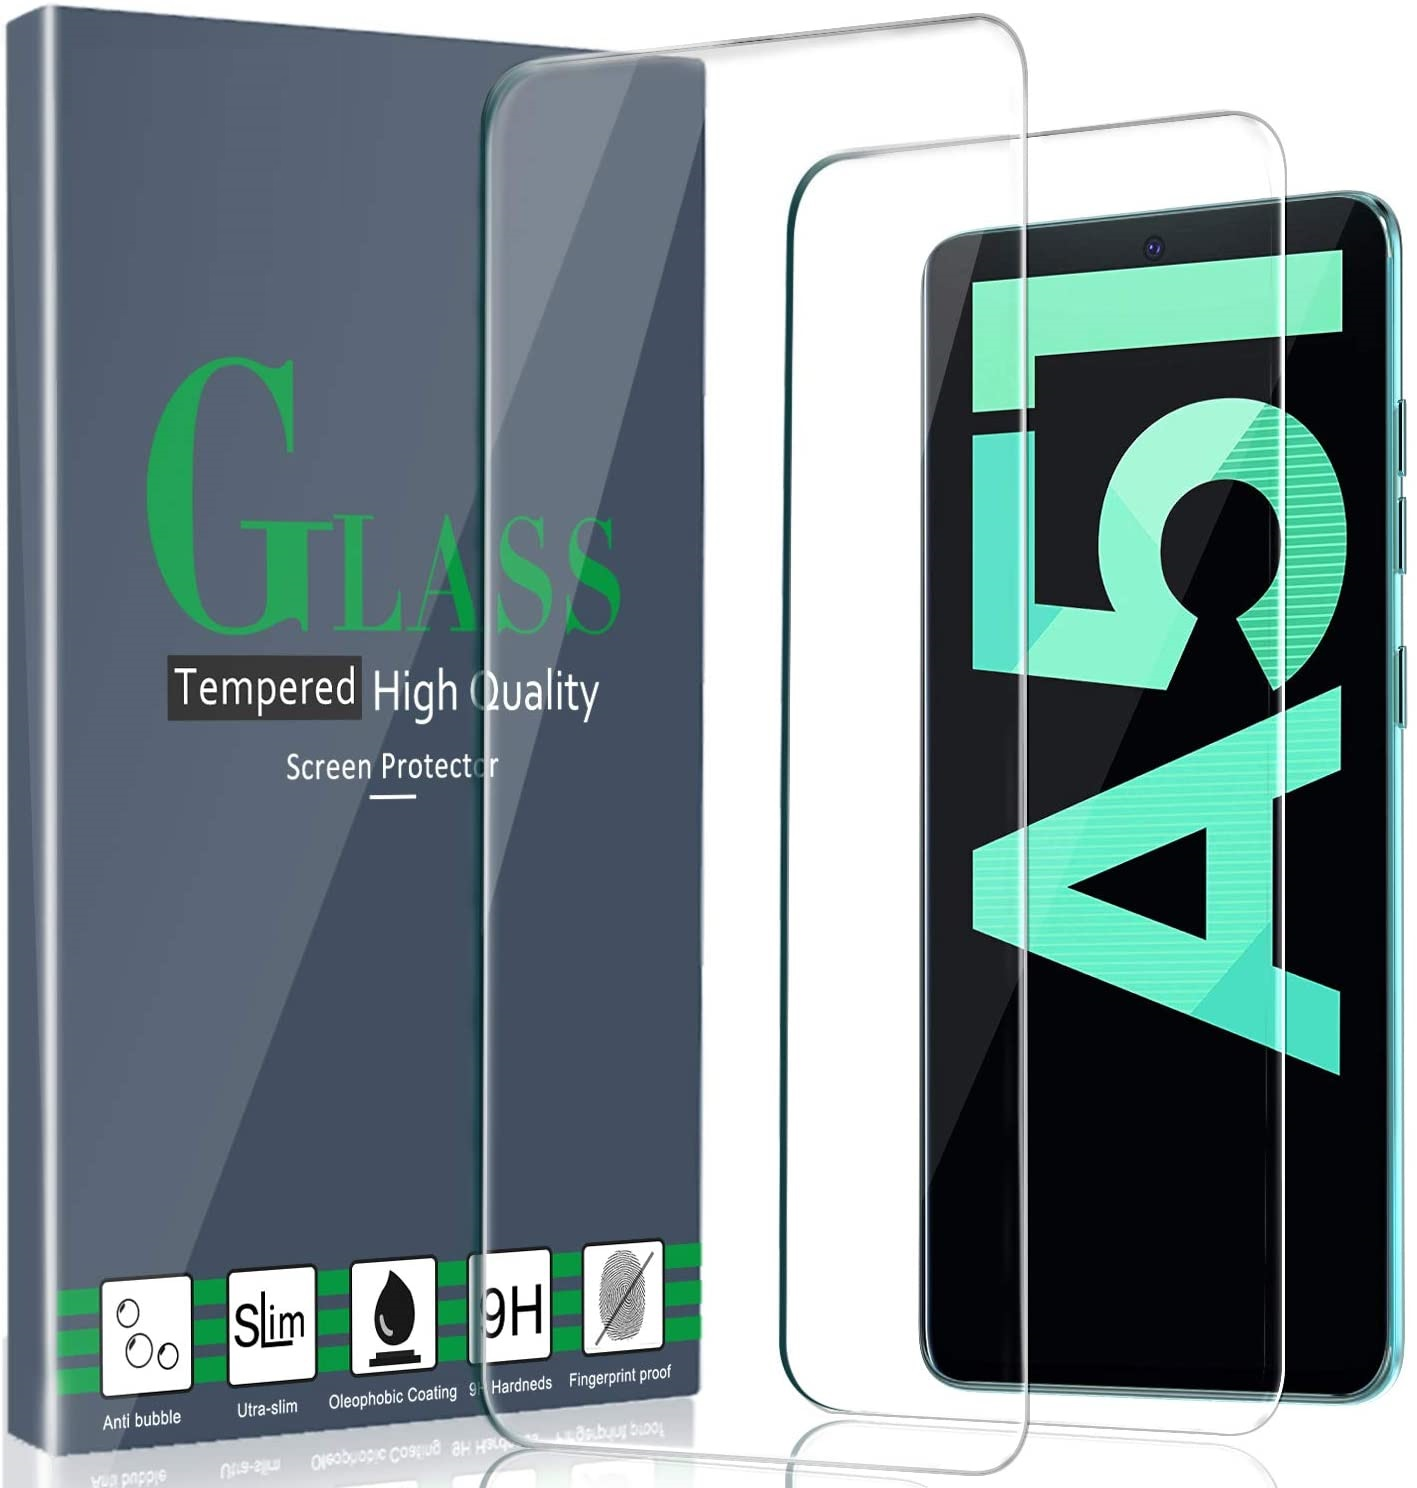 Tempered Glass For Samsung Galaxy A30 A50 Screen Protector 9H Safety Protective Film On A 30 50 A70 A40 A60 M20 M30 A10 A51 A71